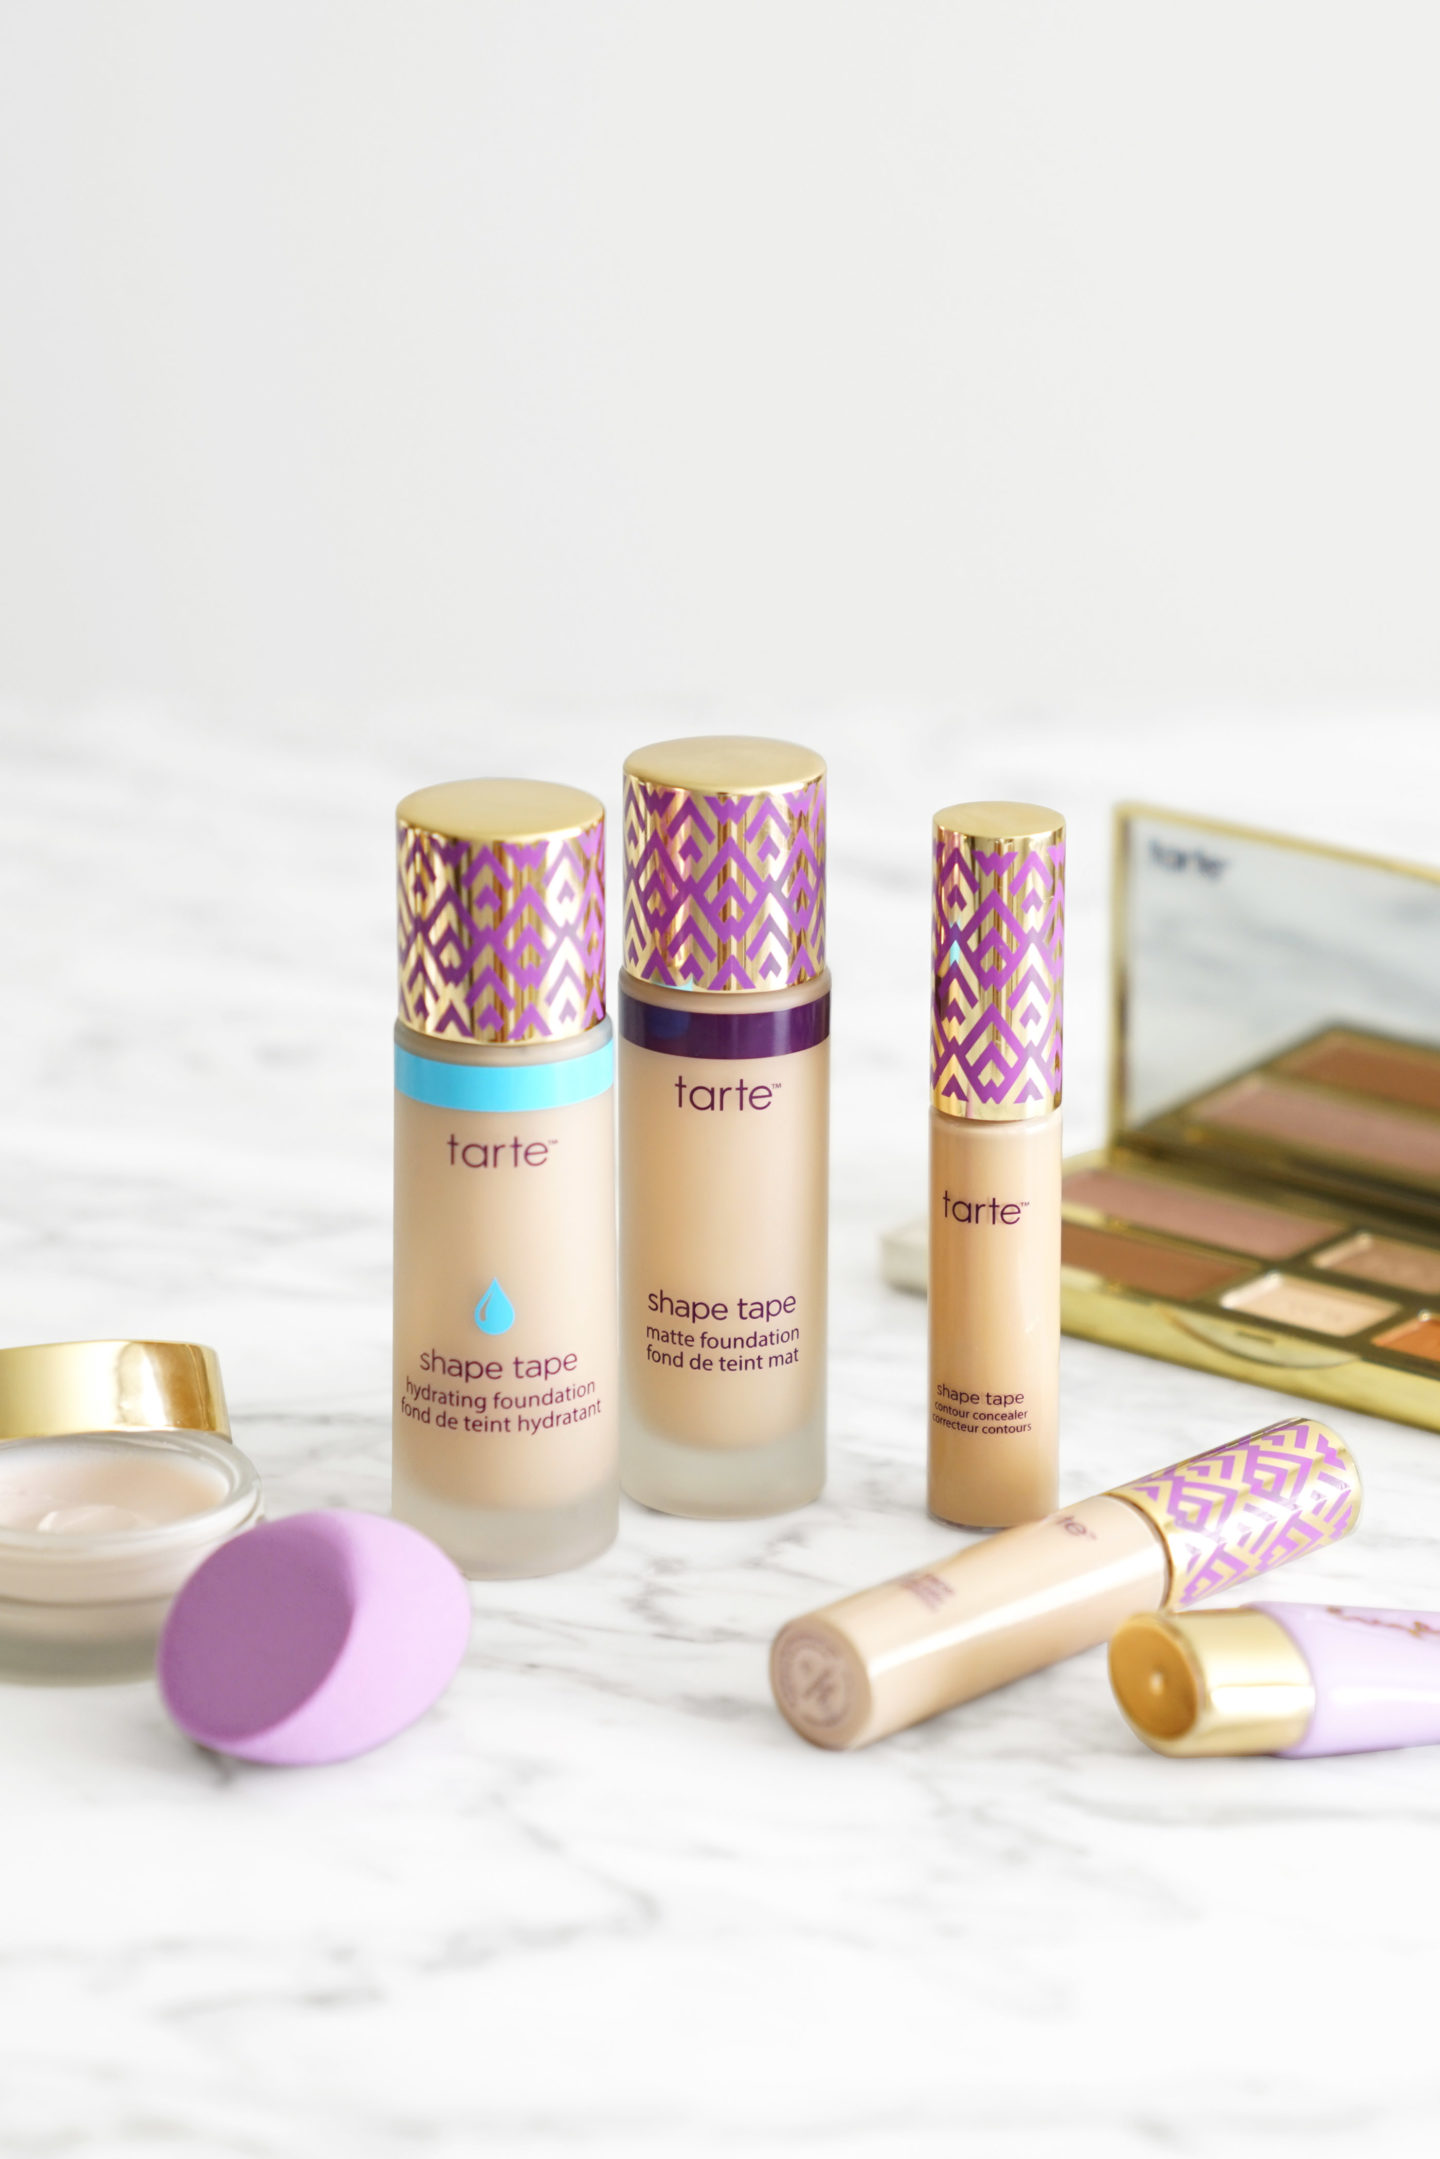 Tarte Shape Tape Foundation Review and Swatches Medium Sand | The Beauty Look Book